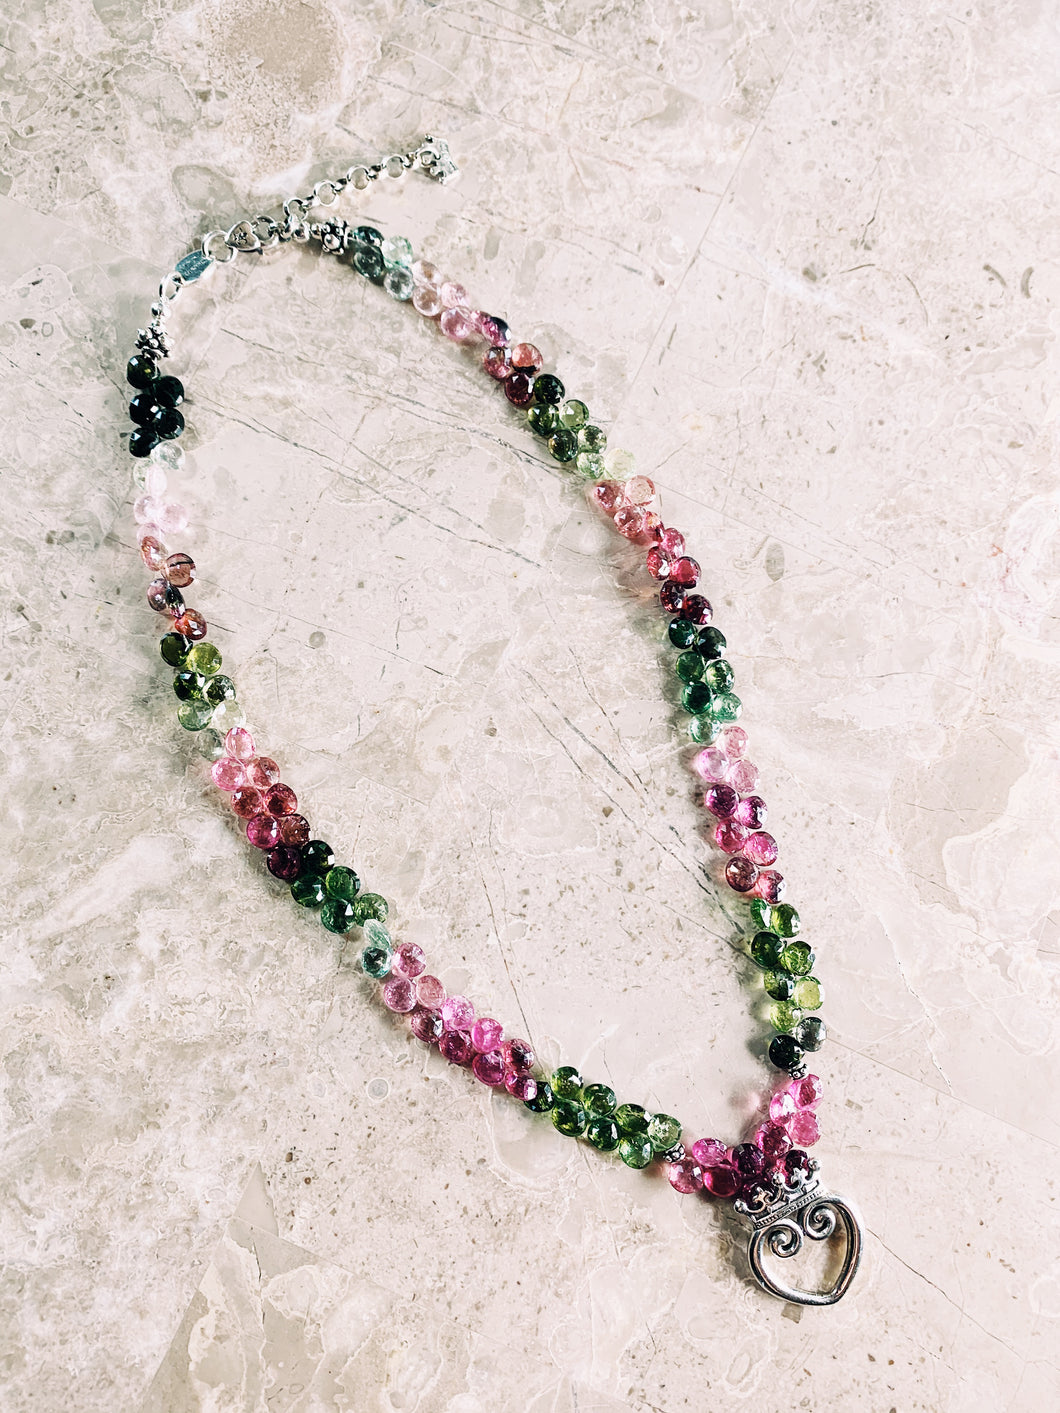 Queen of Hearts Chakra Harmony Watermelon Tourmaline Necklace